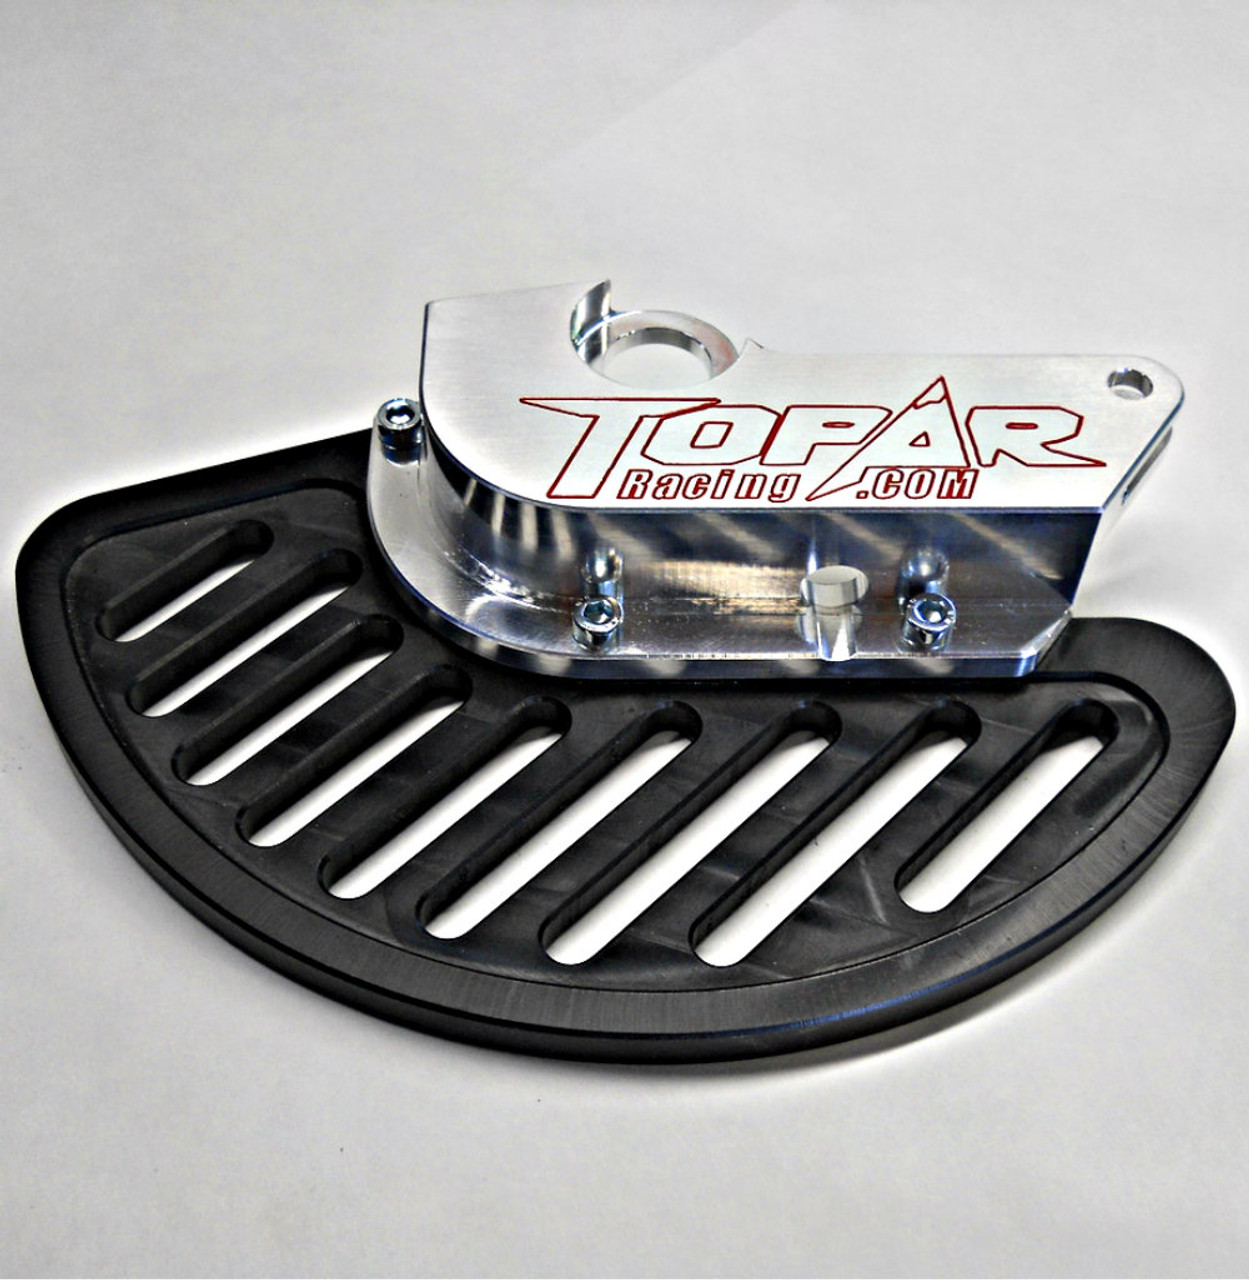 Topar Racing Front Brake Rotor Disc Guard for 2010-2018 BETA - All Enduro, 2T, 4T, RR, RR-S and RS  with UHMW  FIN (SHOWN WITHOUT CALIPER GUARD)